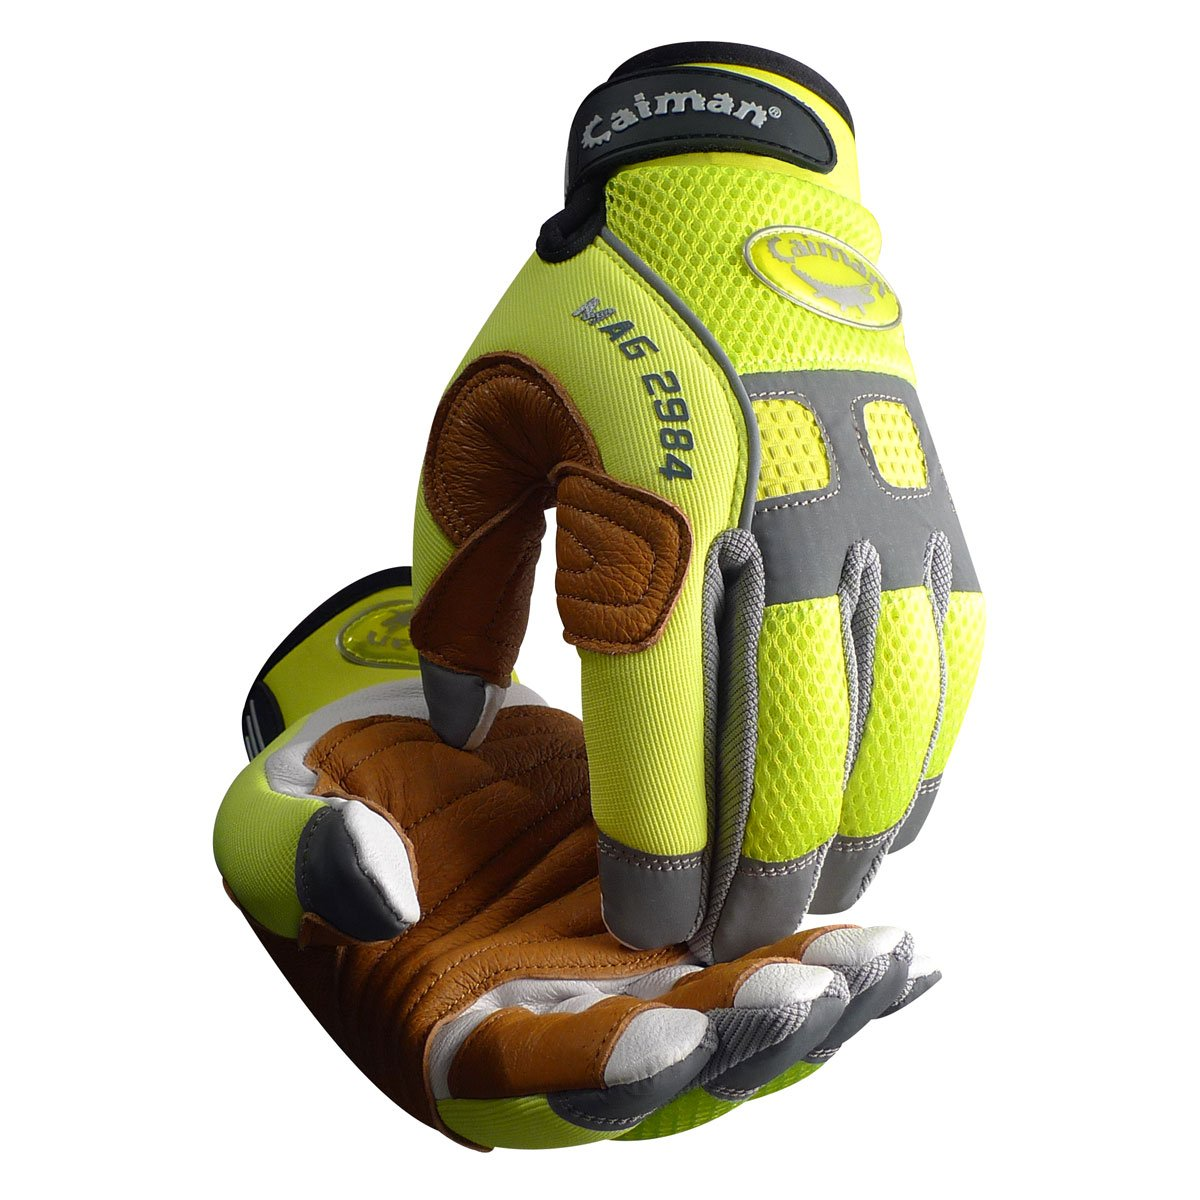 Large Caiman 2984-5 Rappelling /& Rope Handling Glove with Goatskin Palm /& Pig Grain Reinforcement Layer